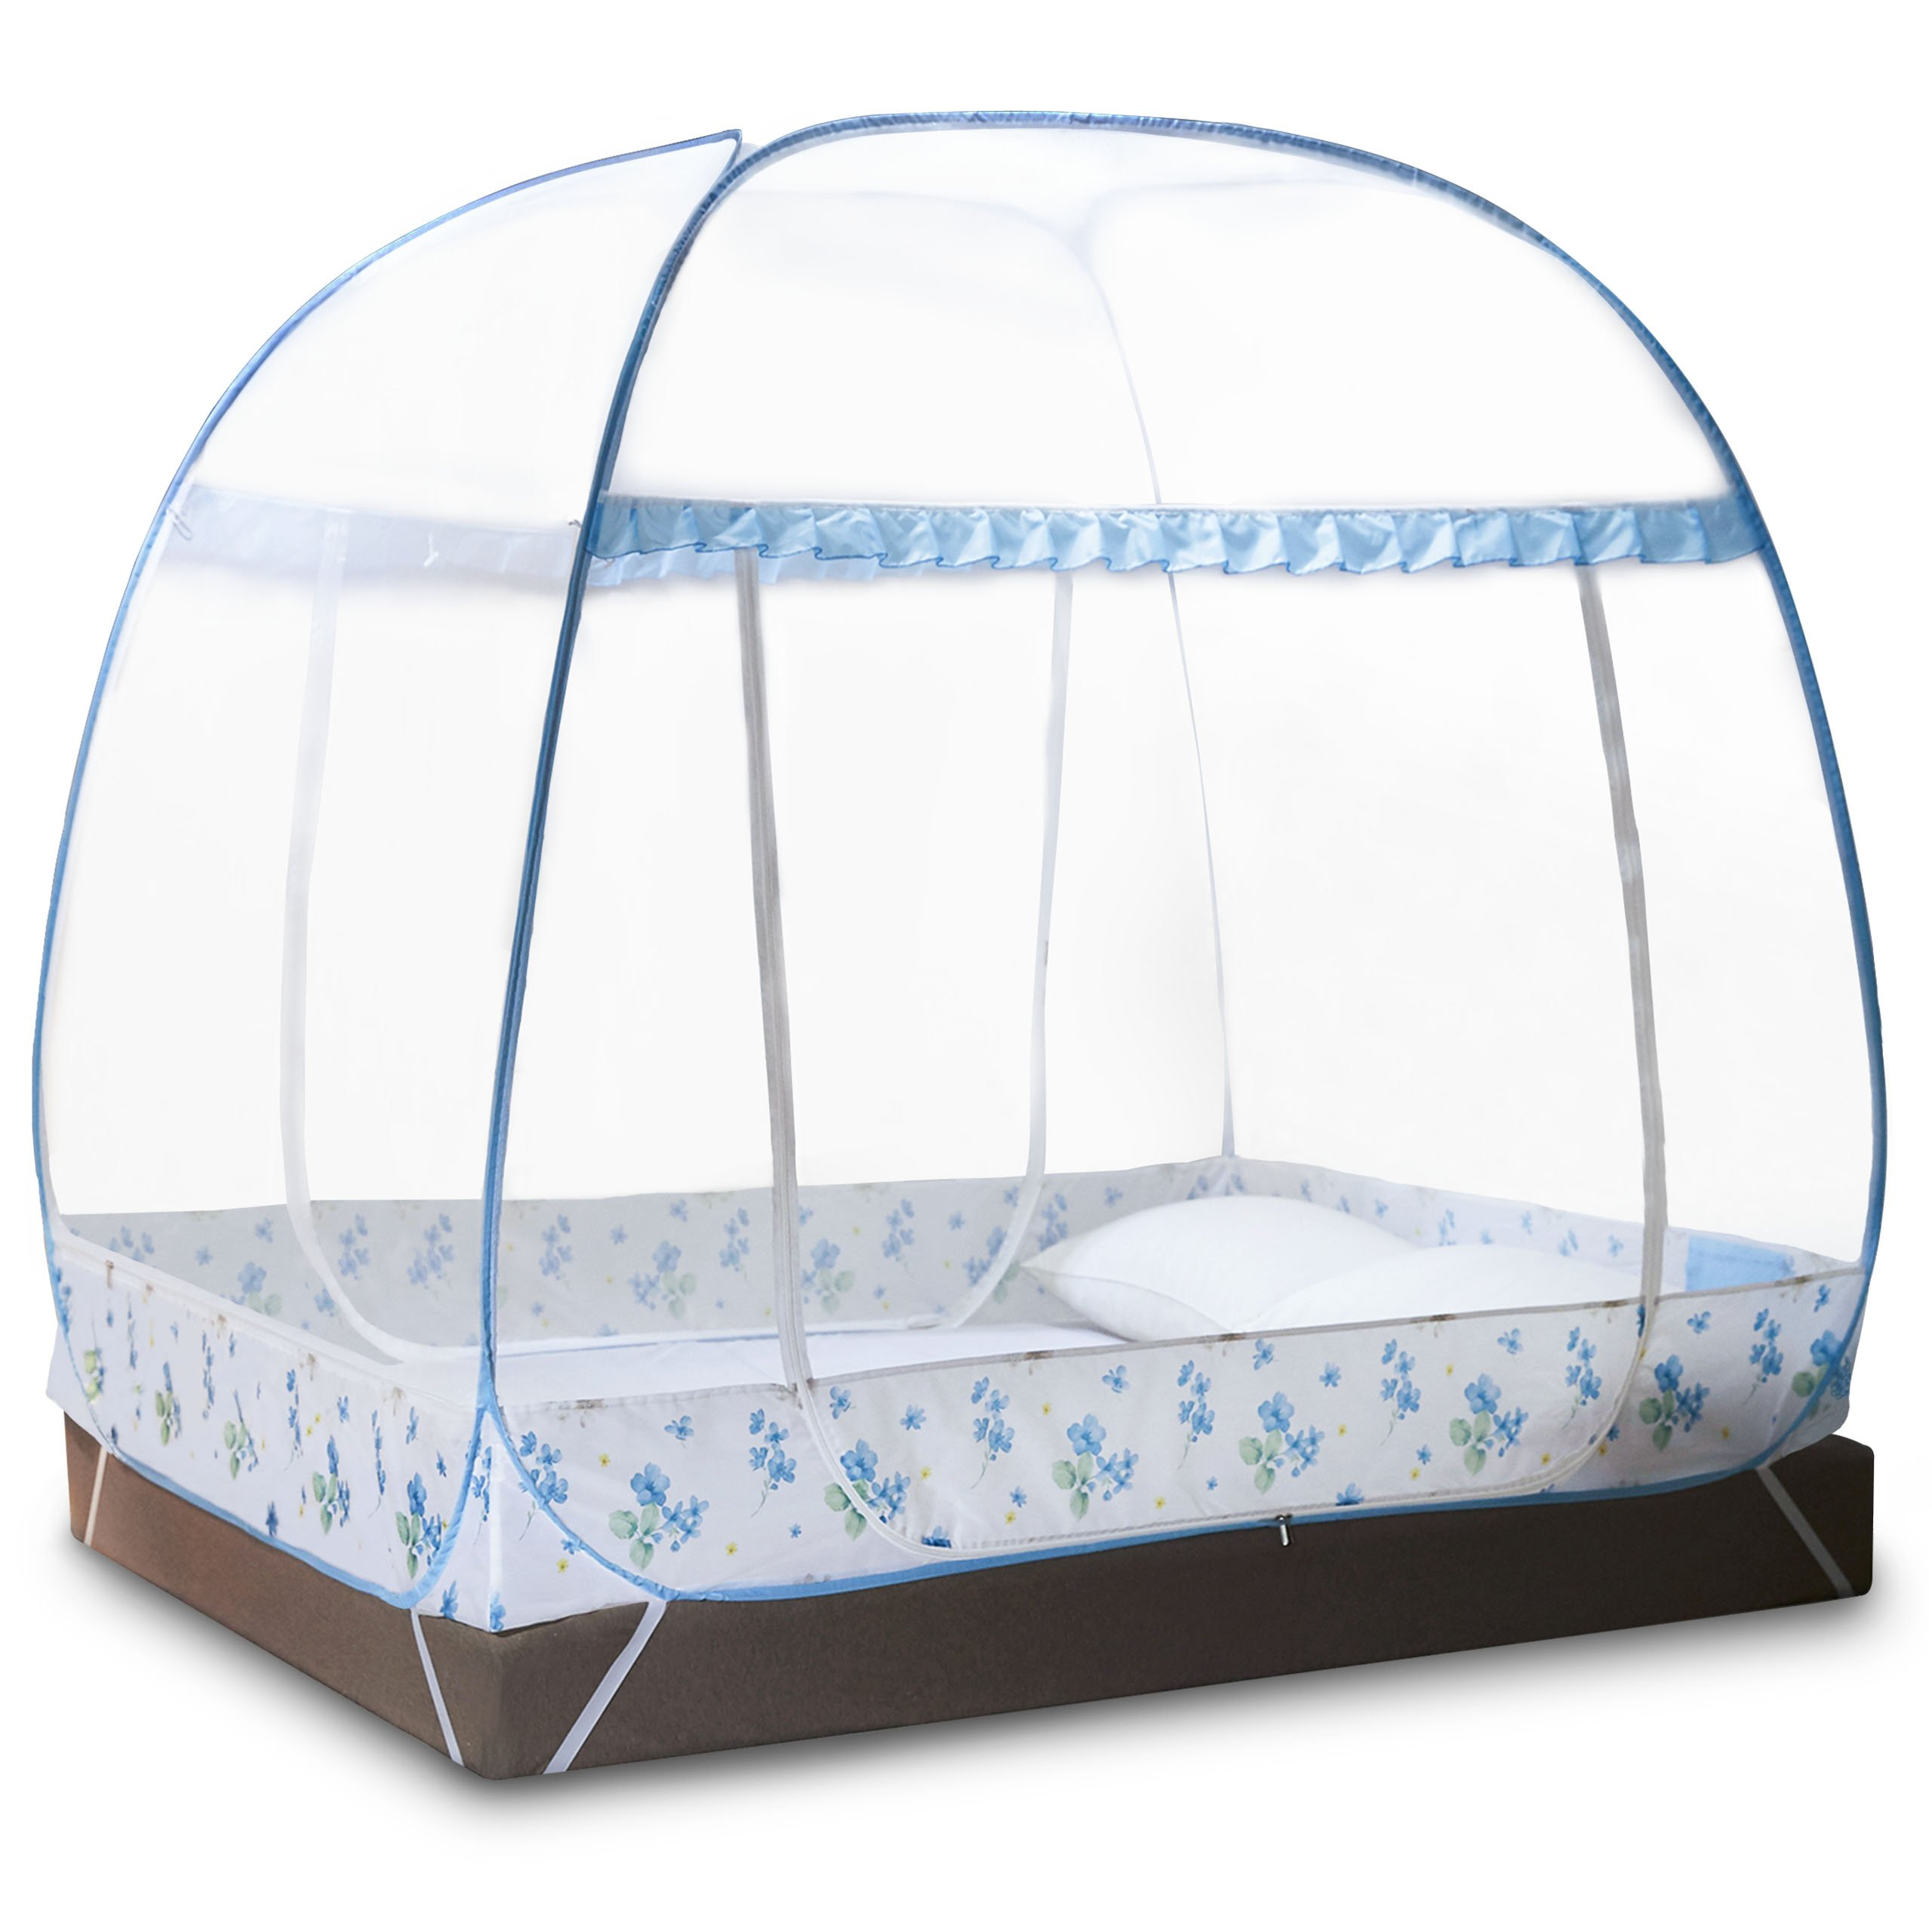 DIMPLES EXCEL Mosquito Bed Net Tent for Double Beds Foldable with Full Bottom, 79'' (L) 59.1''(W) 67''(H) (2x1.5x1.45m) (Blue)